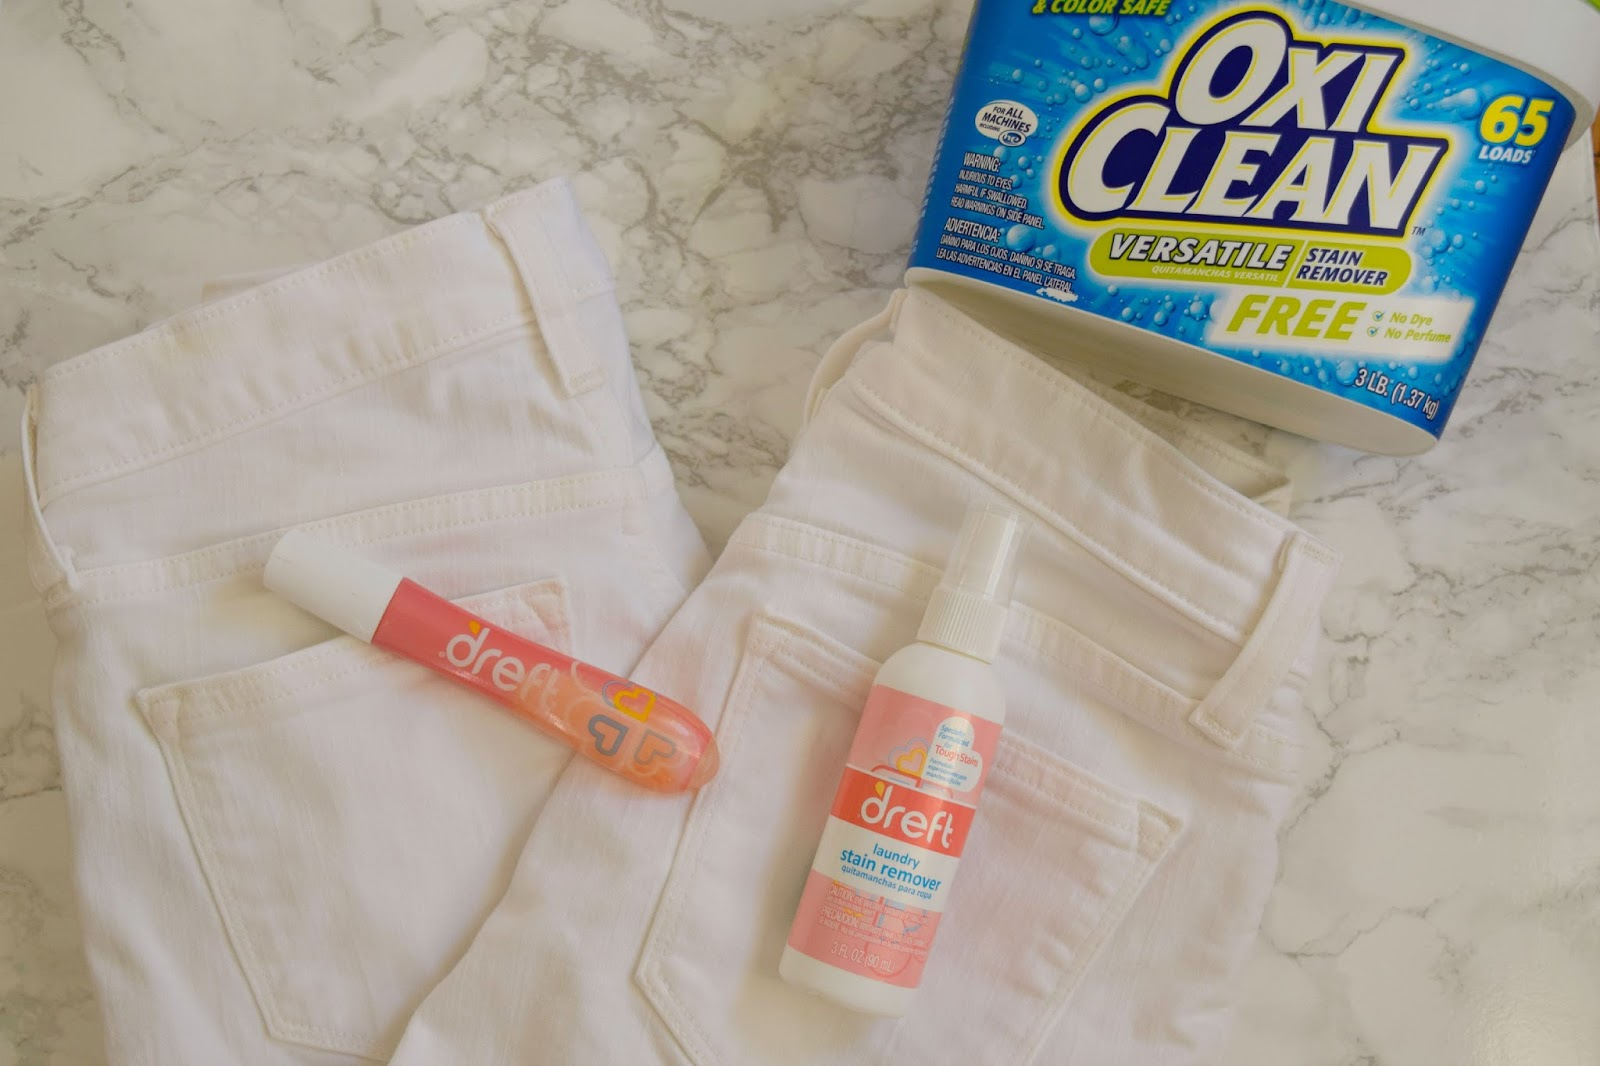 keep white jeans white - bleach white jeans - oxiclean white jeans